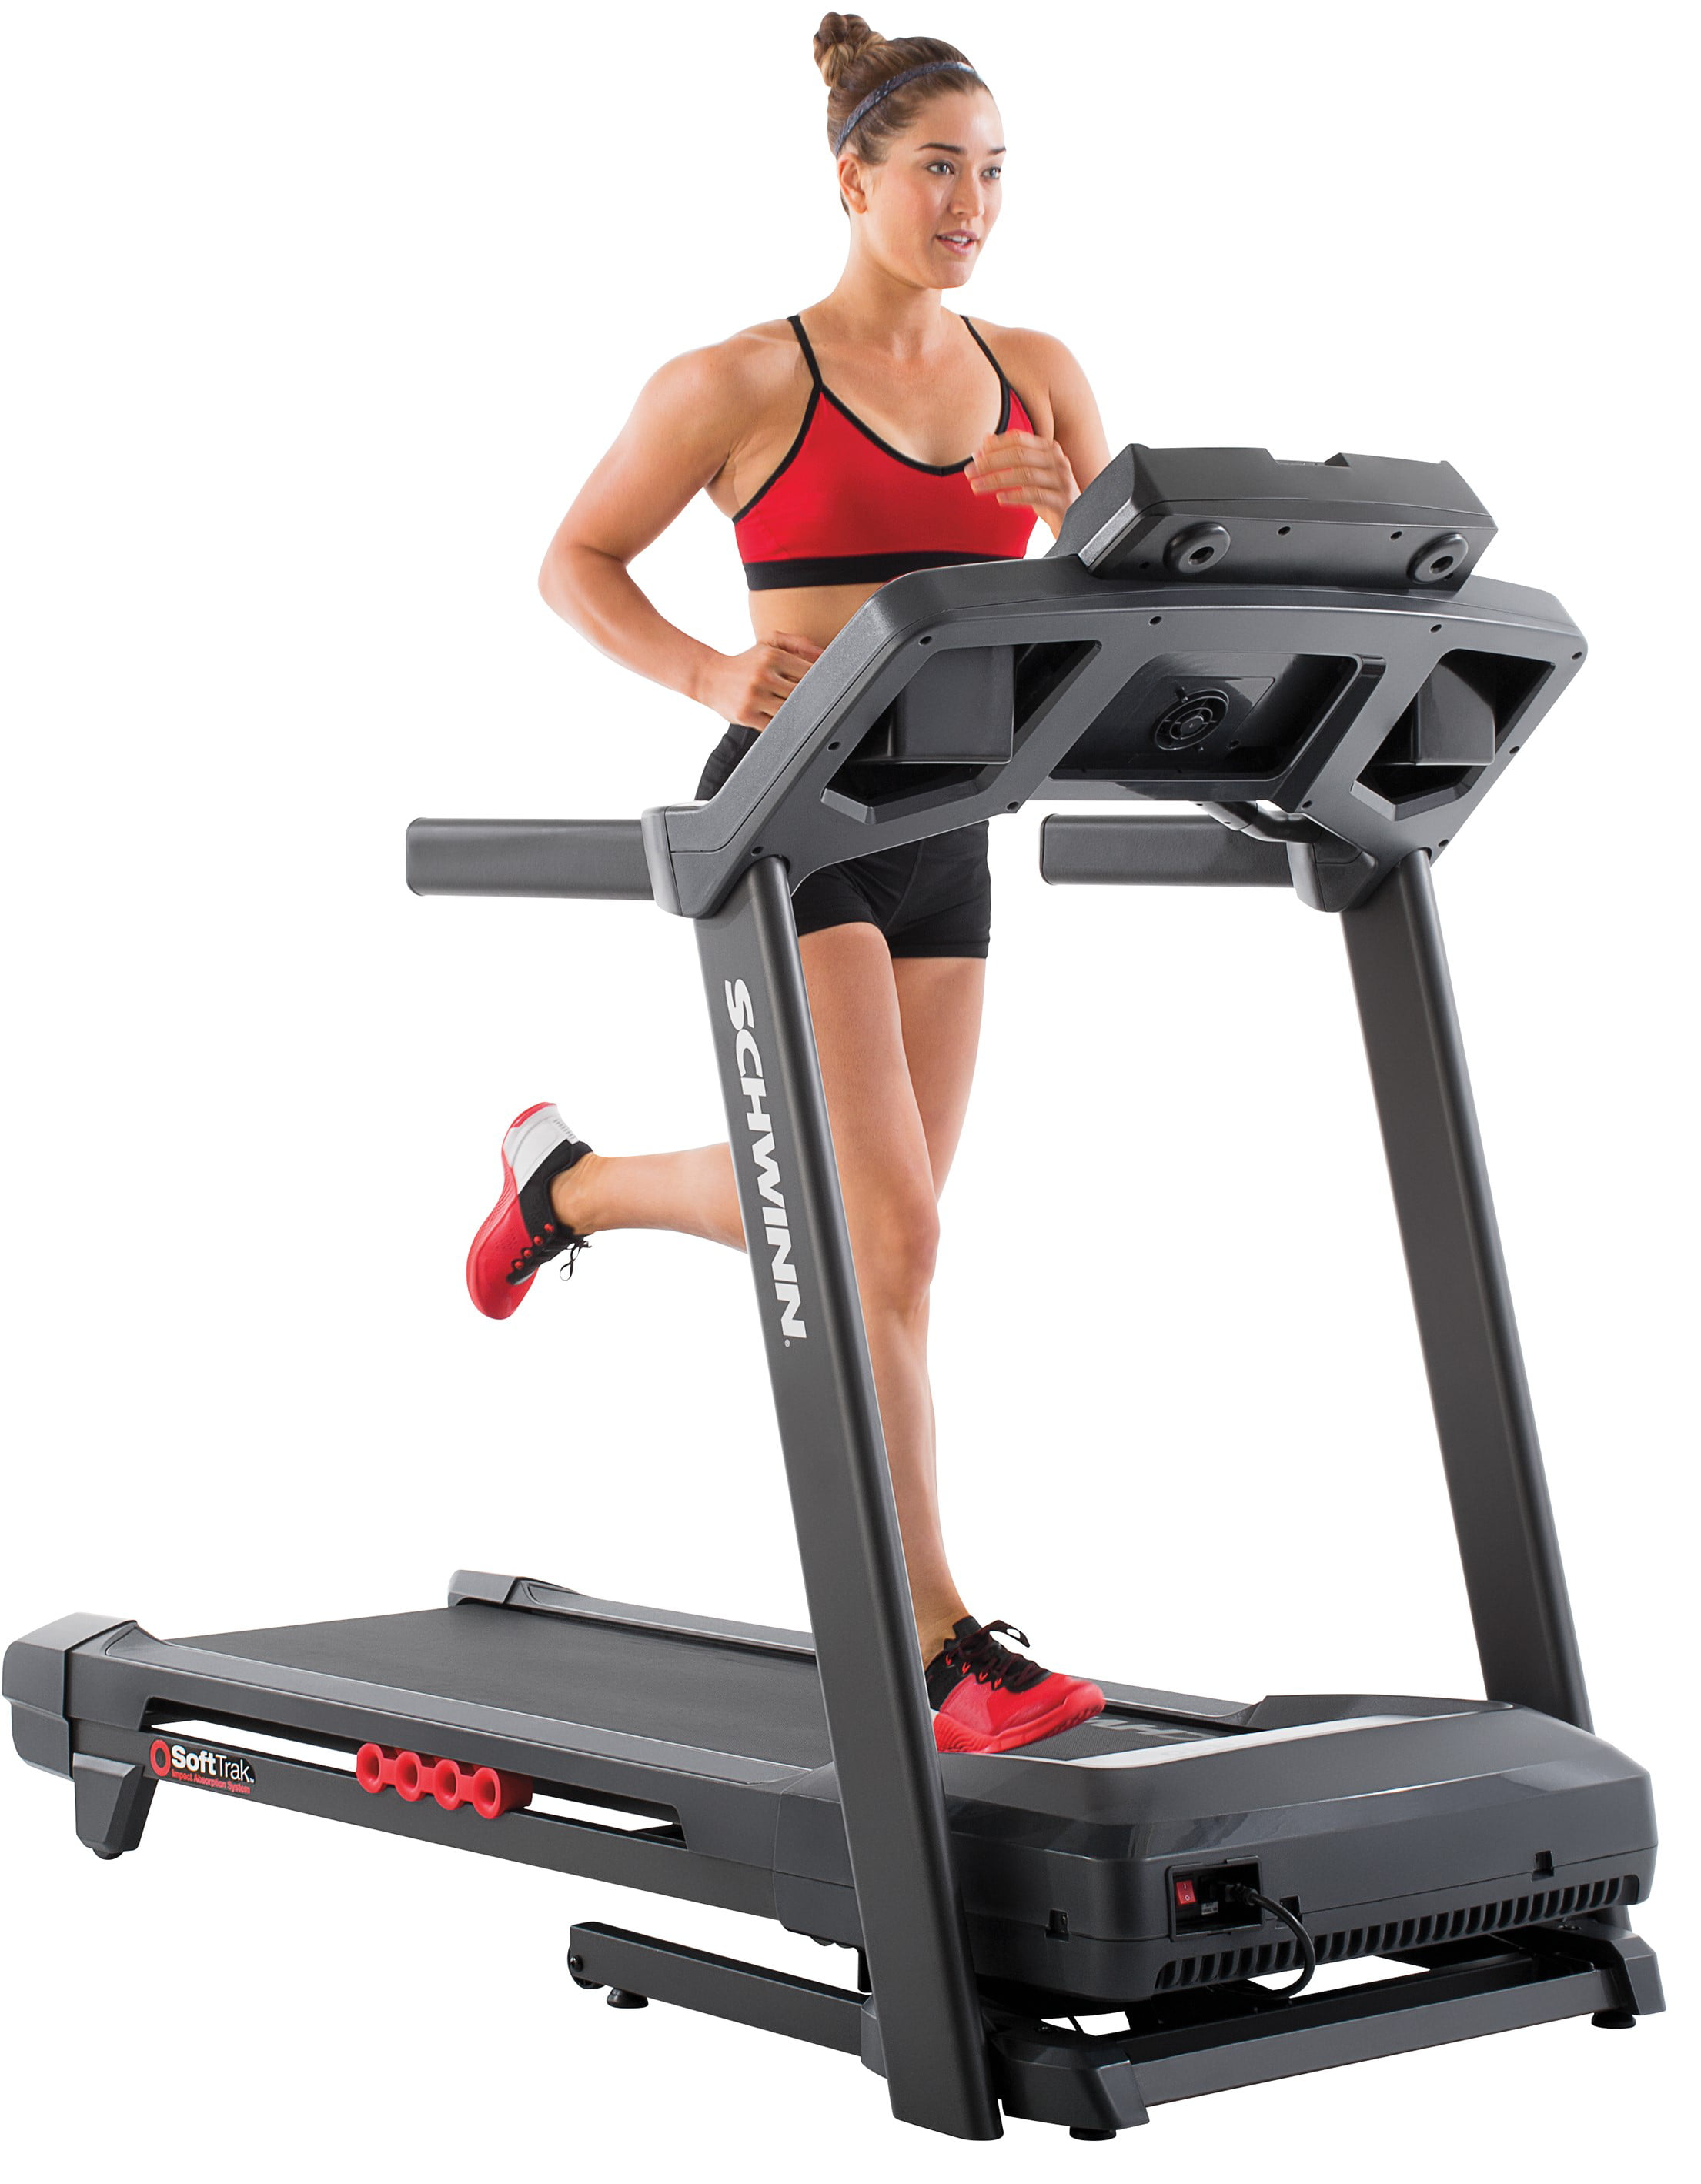 Schwinn 830 Treadmill Heart Rate Enabled Treadmill with Quick Goals Tracking & 12% Incline by Schwinn